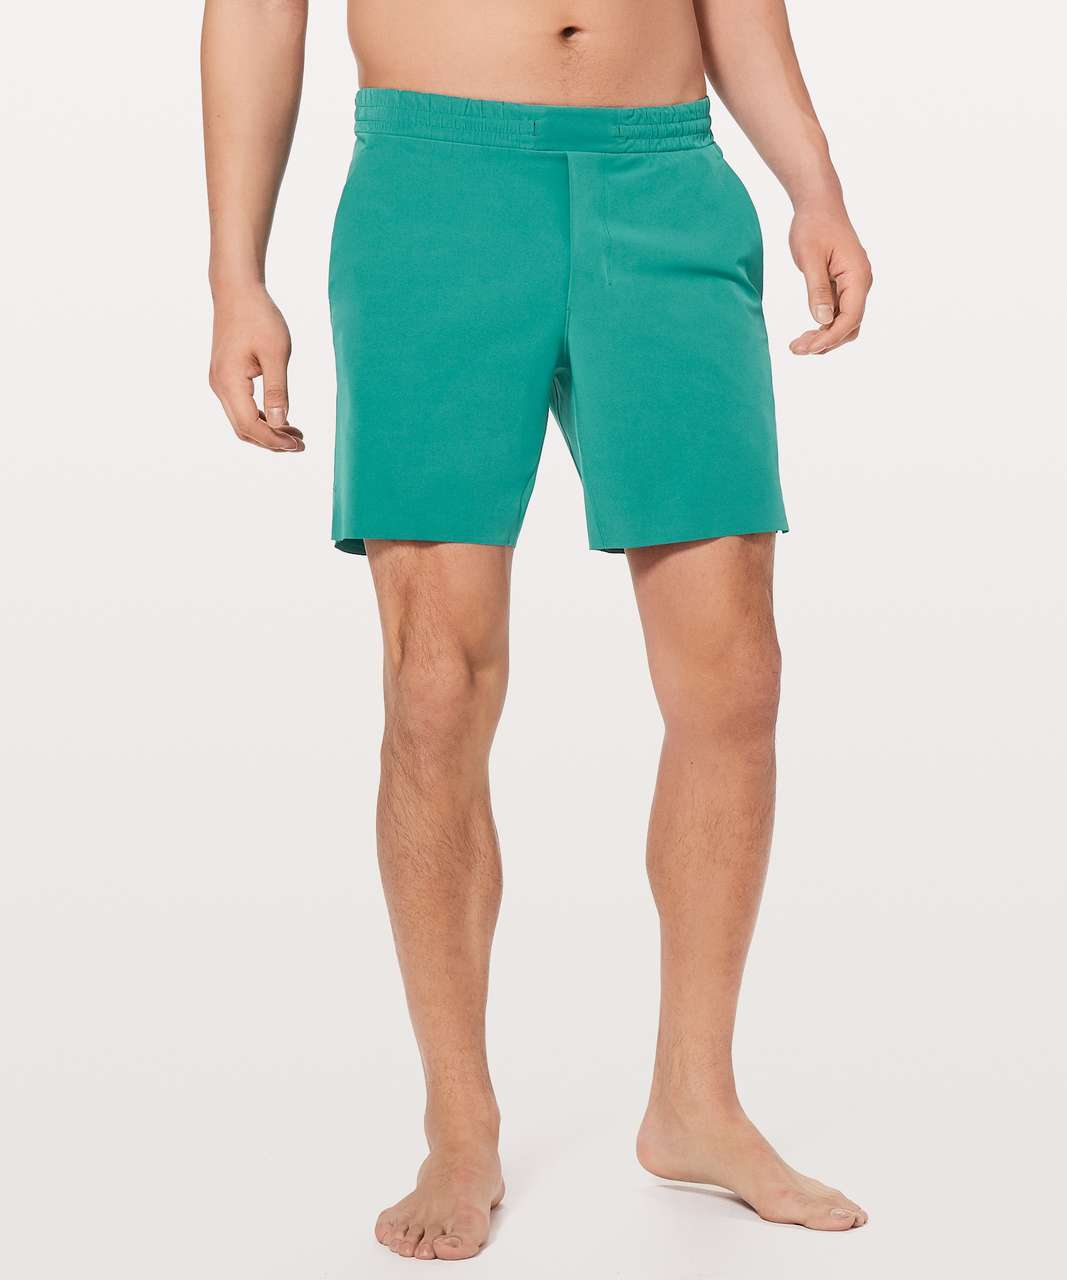 "Lululemon Channel Cross Short *7"" Updated - Teal Green"